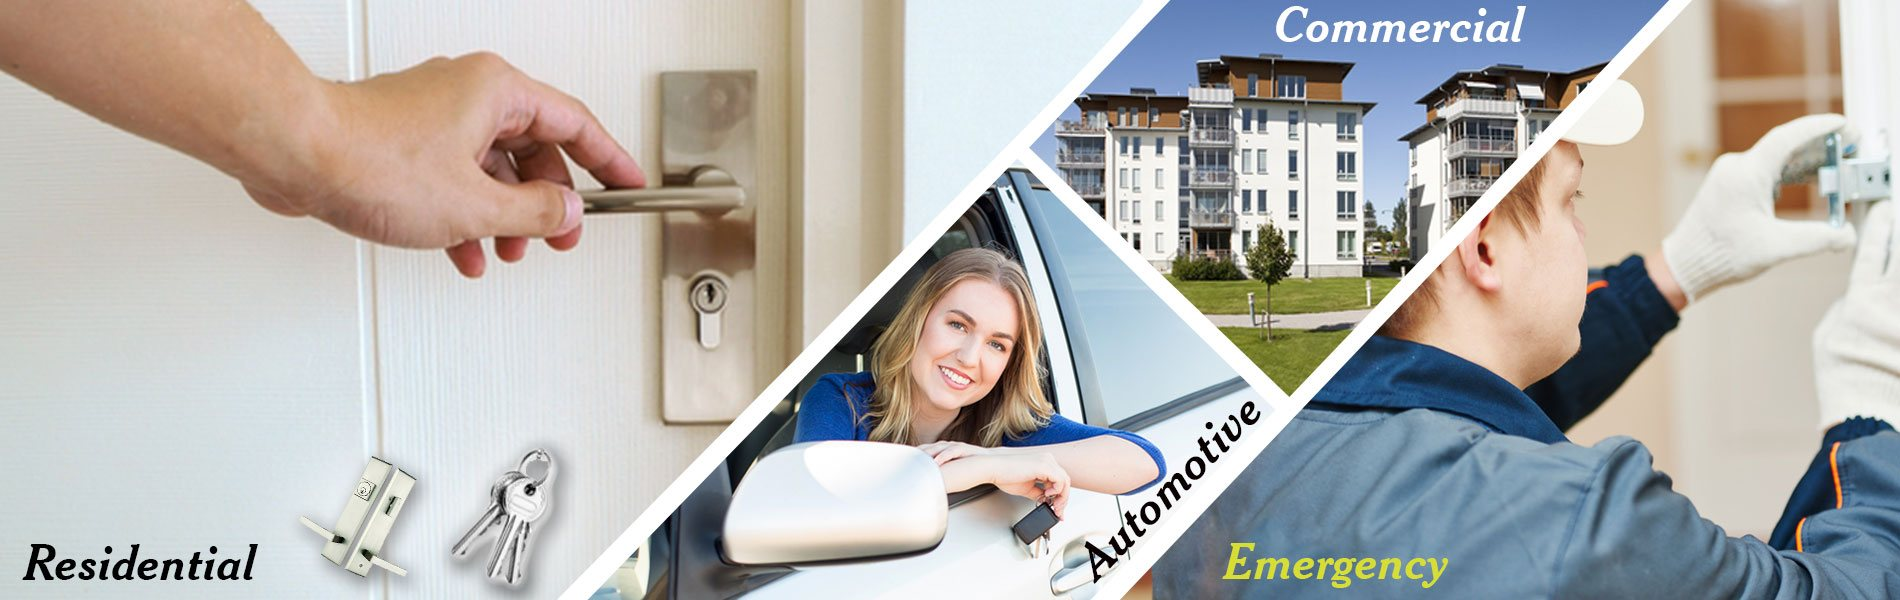 Safe Key Locksmith Service Lehigh Acres, FL 239-260-0739